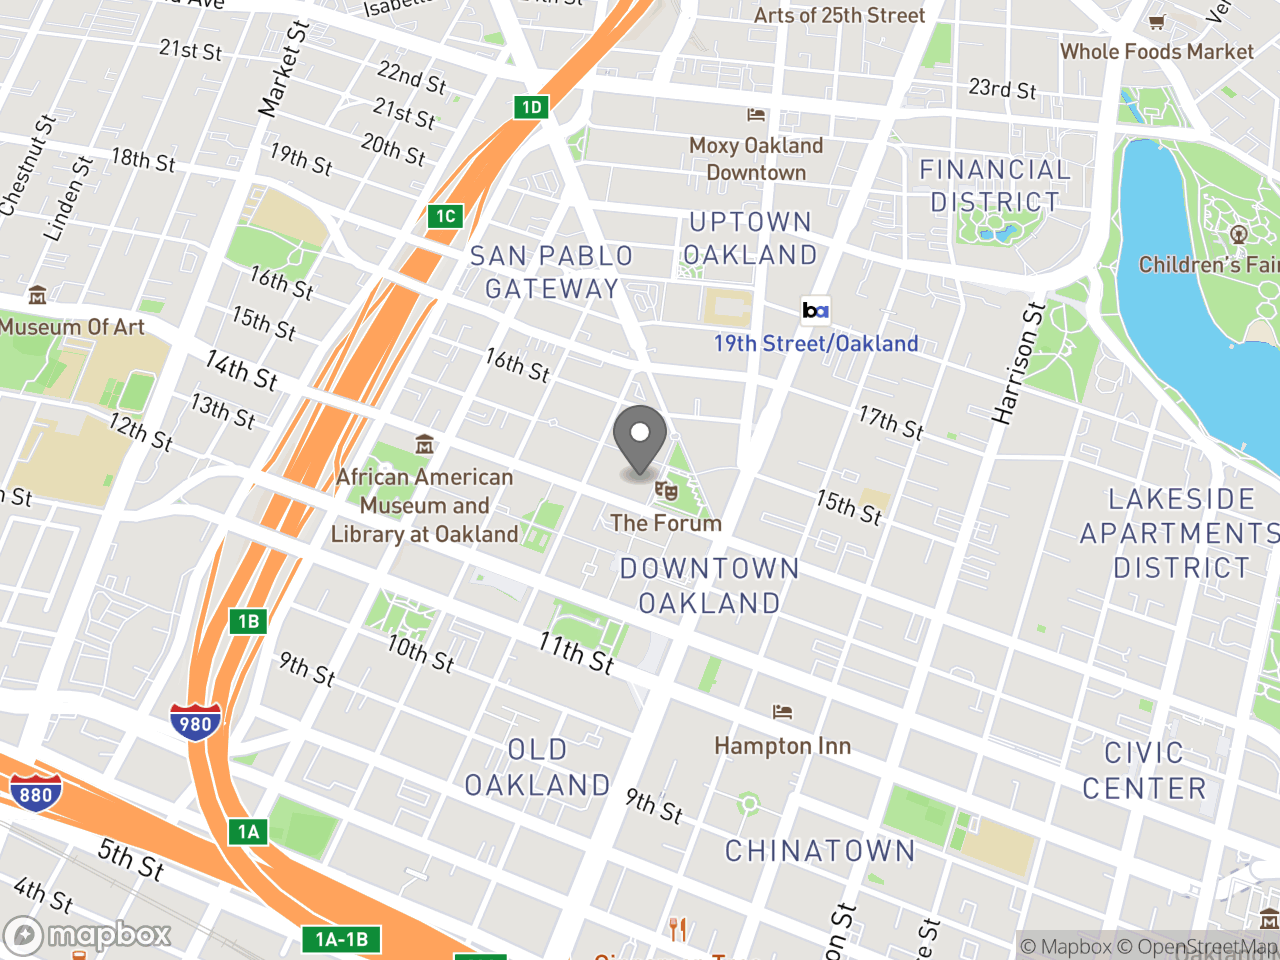 Map location for AC-OCAP Administering Board Meeting, located at 1 Frank H. Ogawa Plaza in Oakland, CA 94612